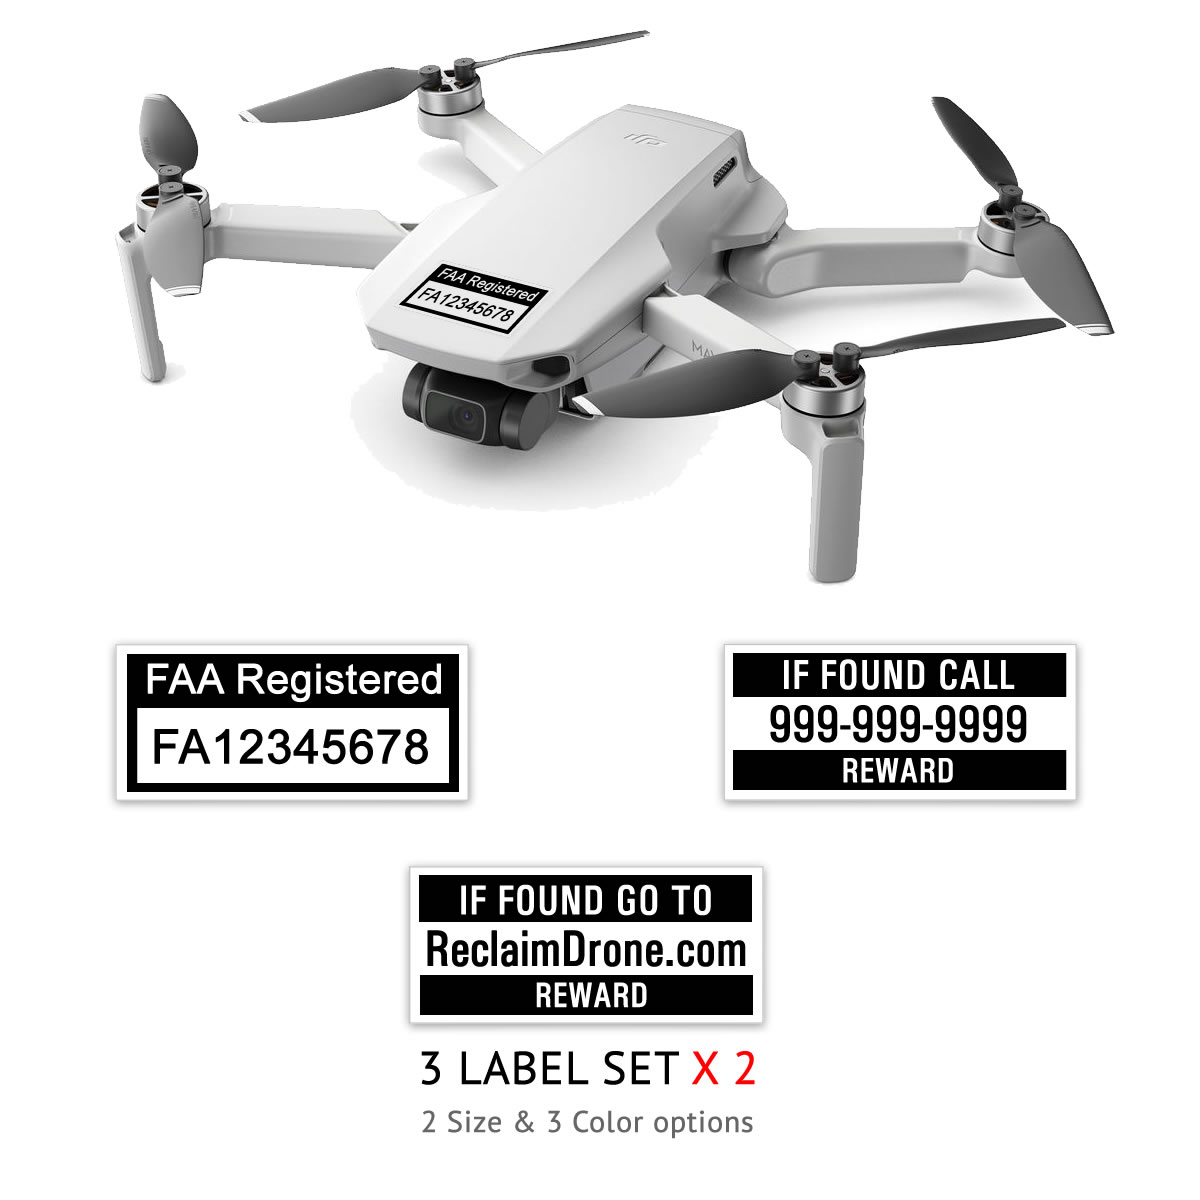 Mavic Mini – FAA Registration Labels, FAA and Phone number in black on white background